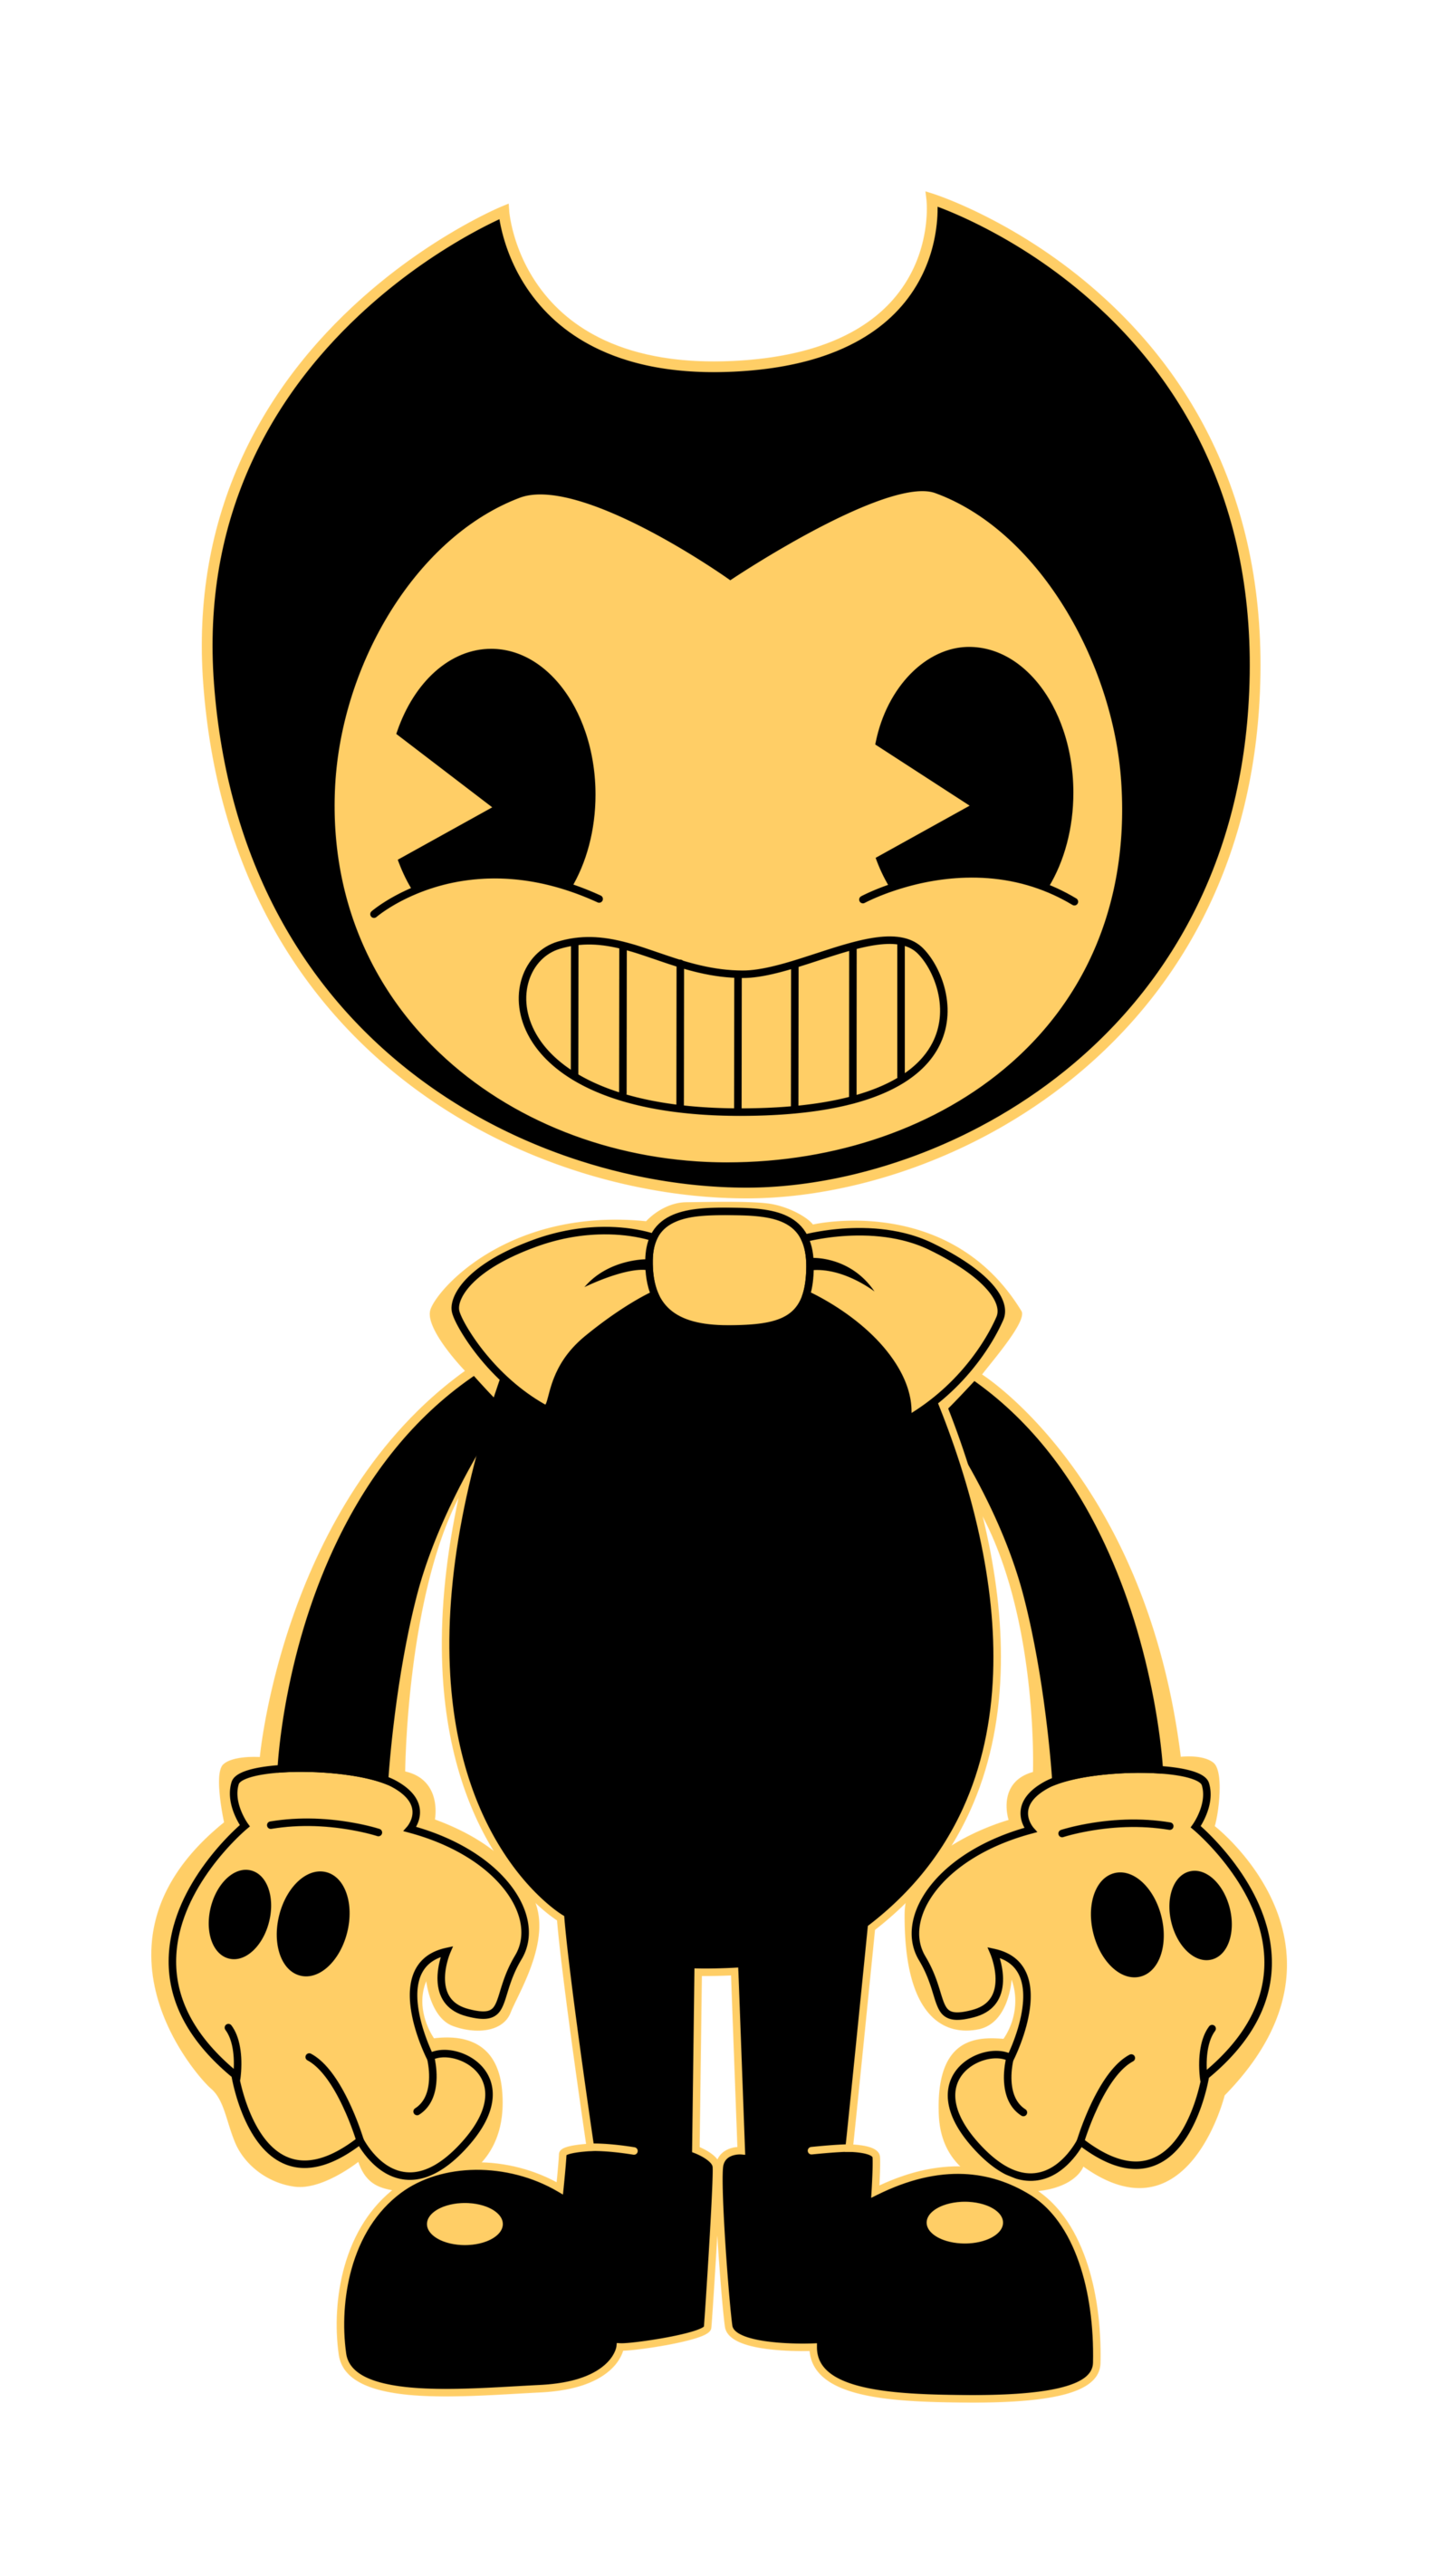 Bendy (Bendy and the Ink Machine).